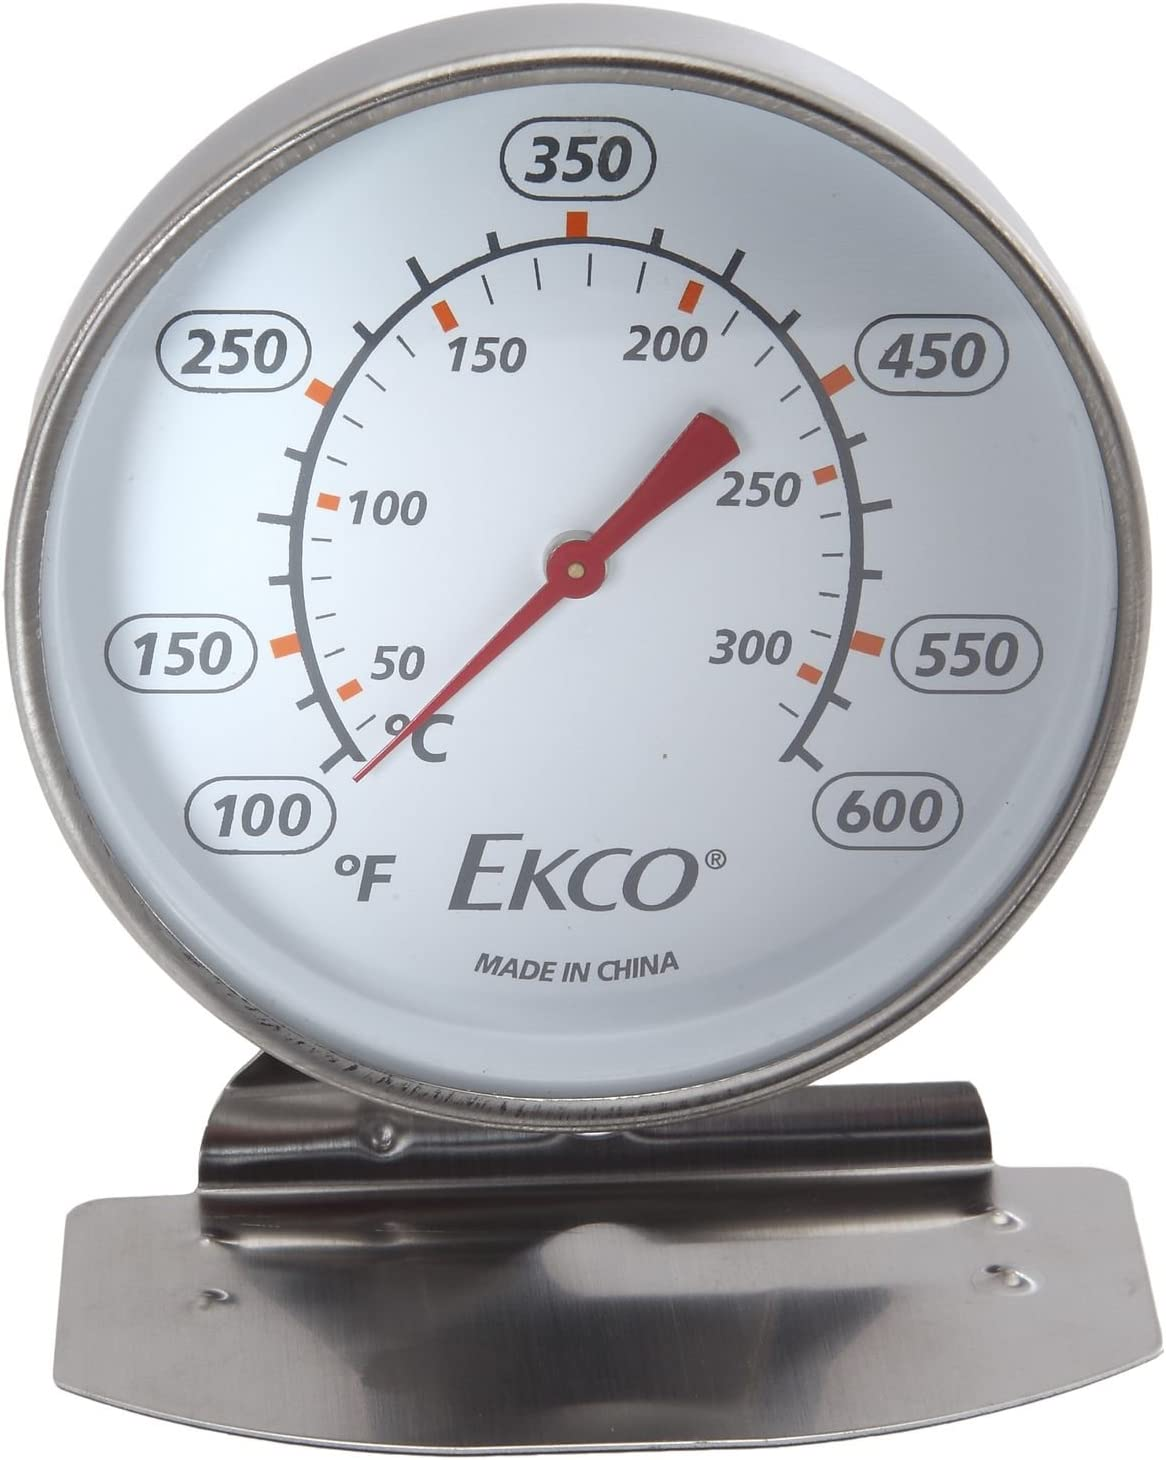 Ekco 7.6 Oven Thermometer